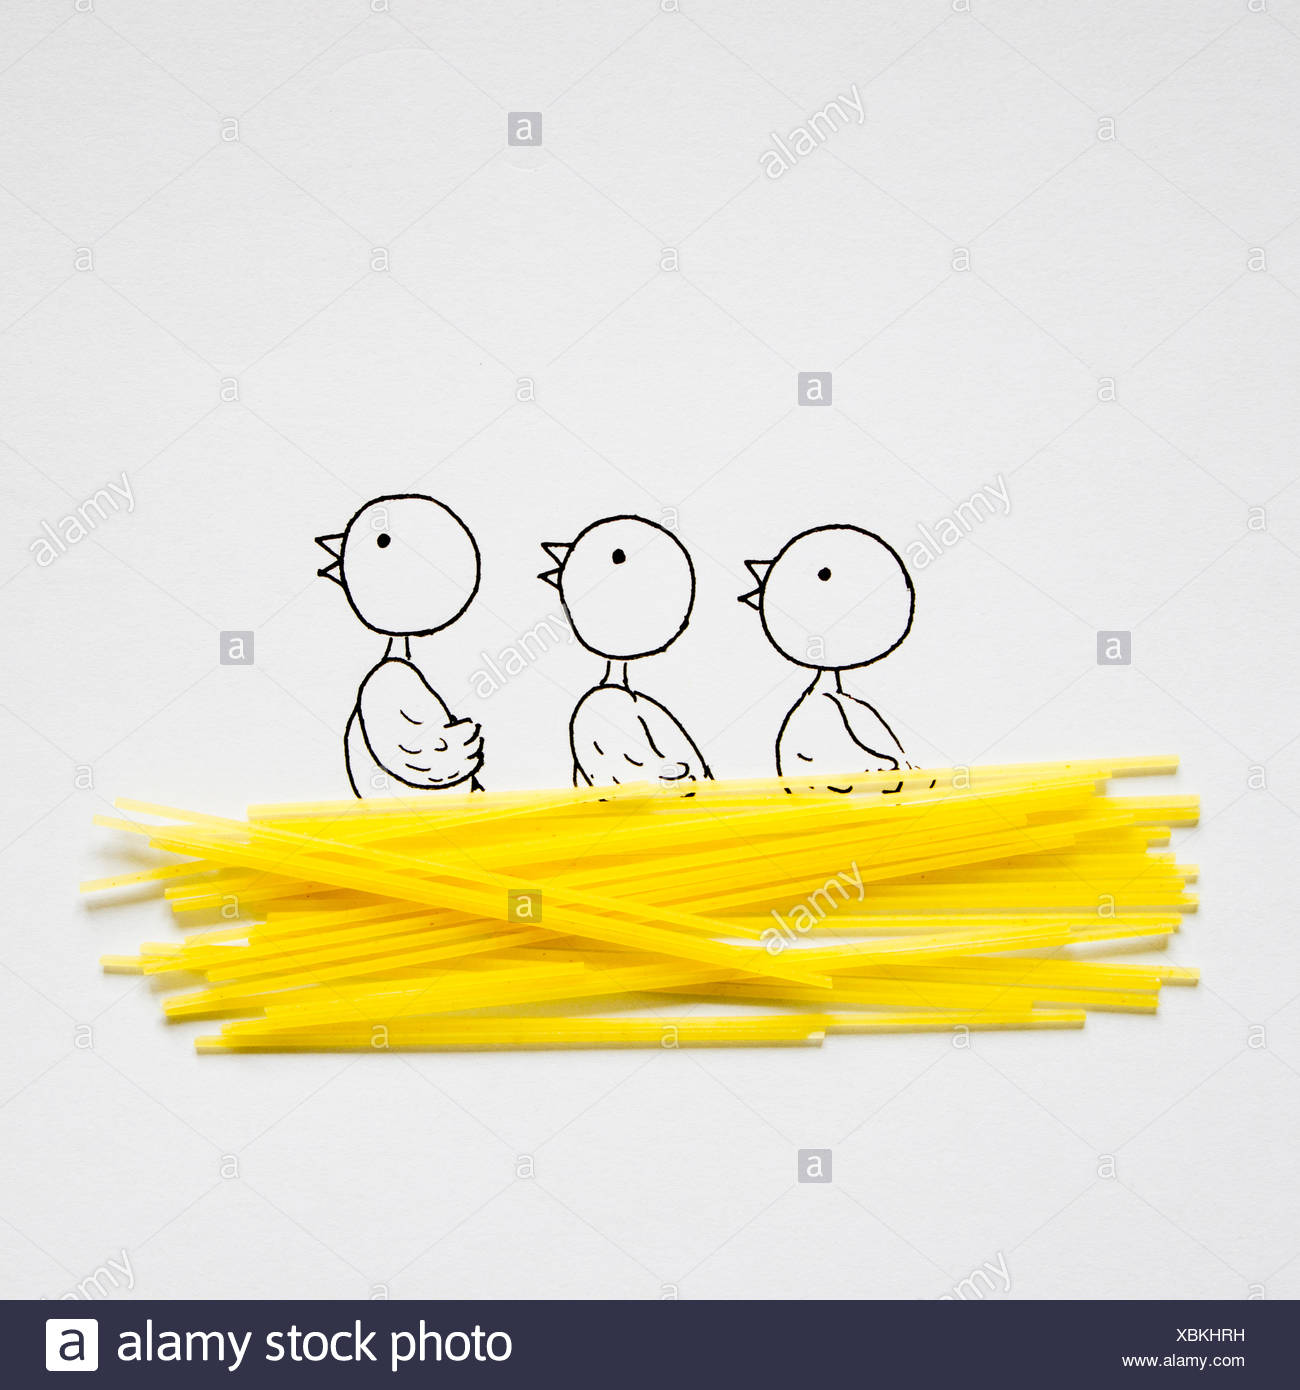 Conceptual drawing of three chicks in a birds nest - Stock Image